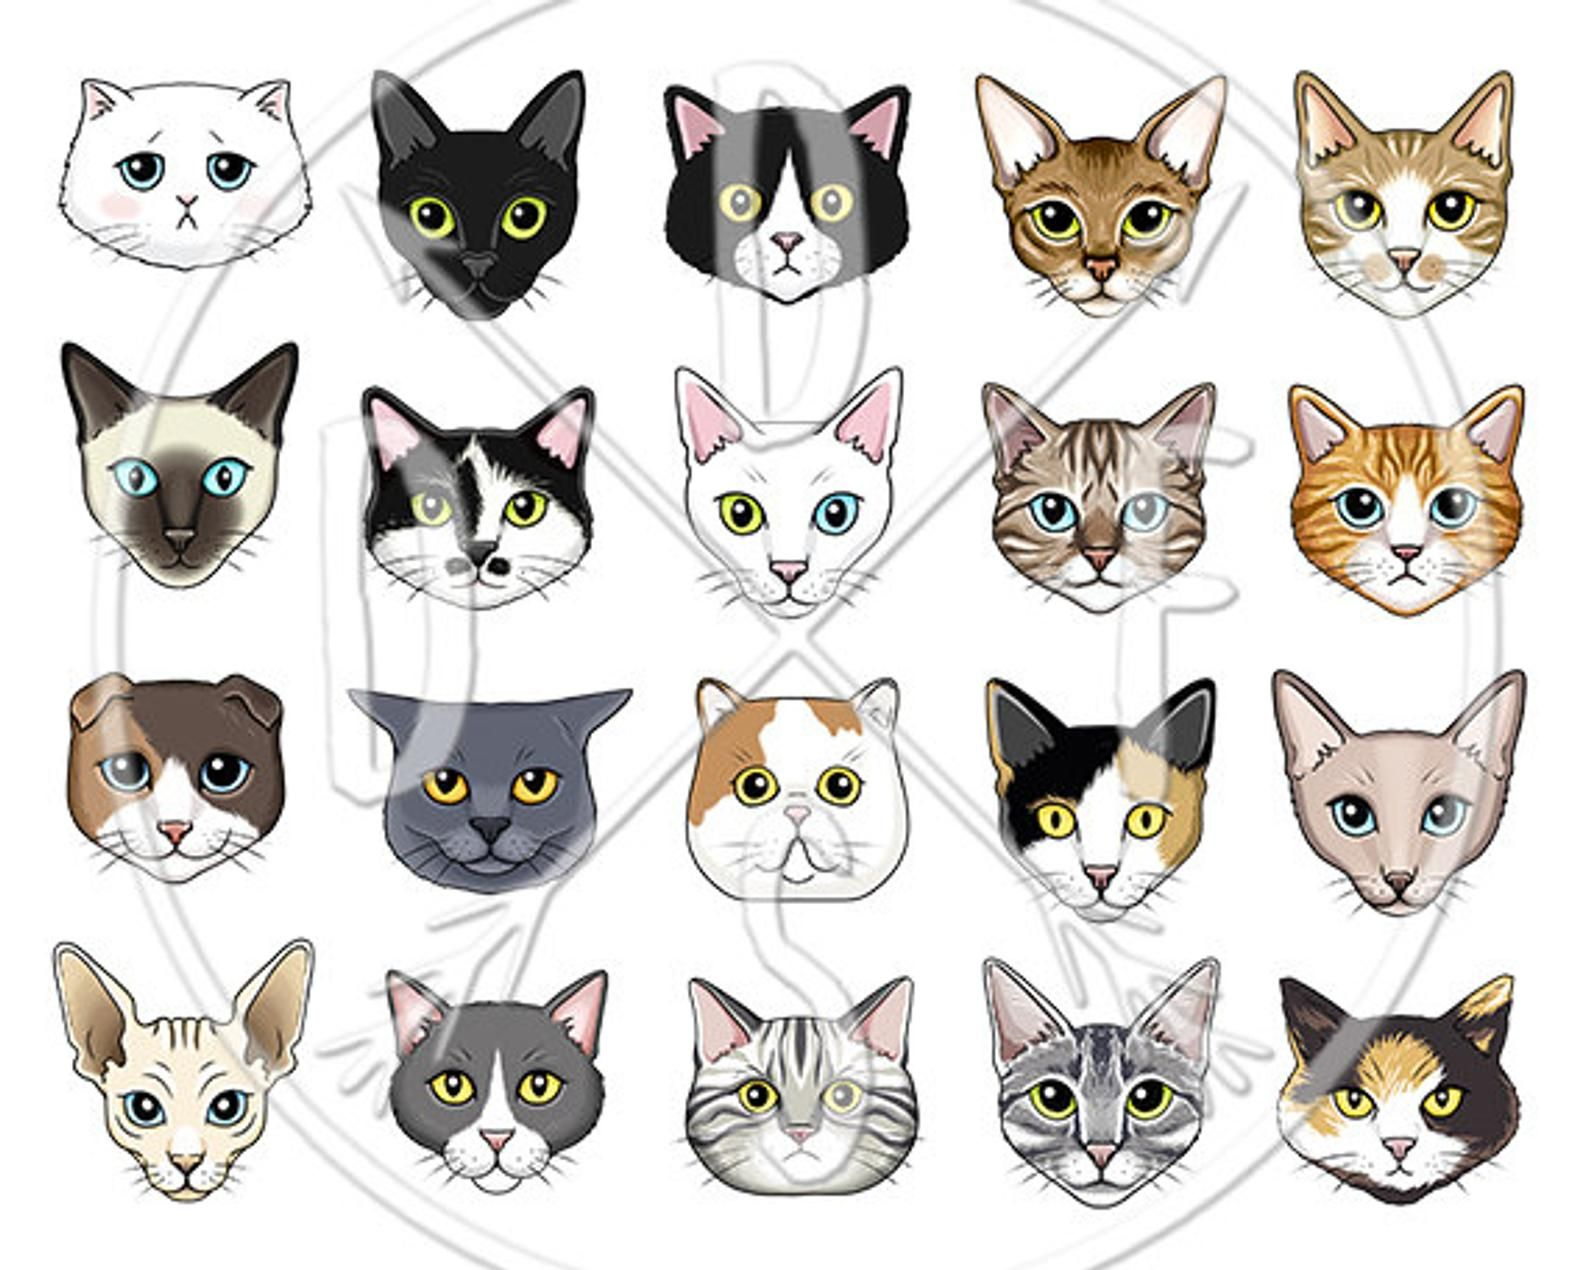 Cat Faces Clipart Black White Tabby Siamese Sphynx Etsy In 2020 Cat Face Cat Face Drawing Cat Drawing